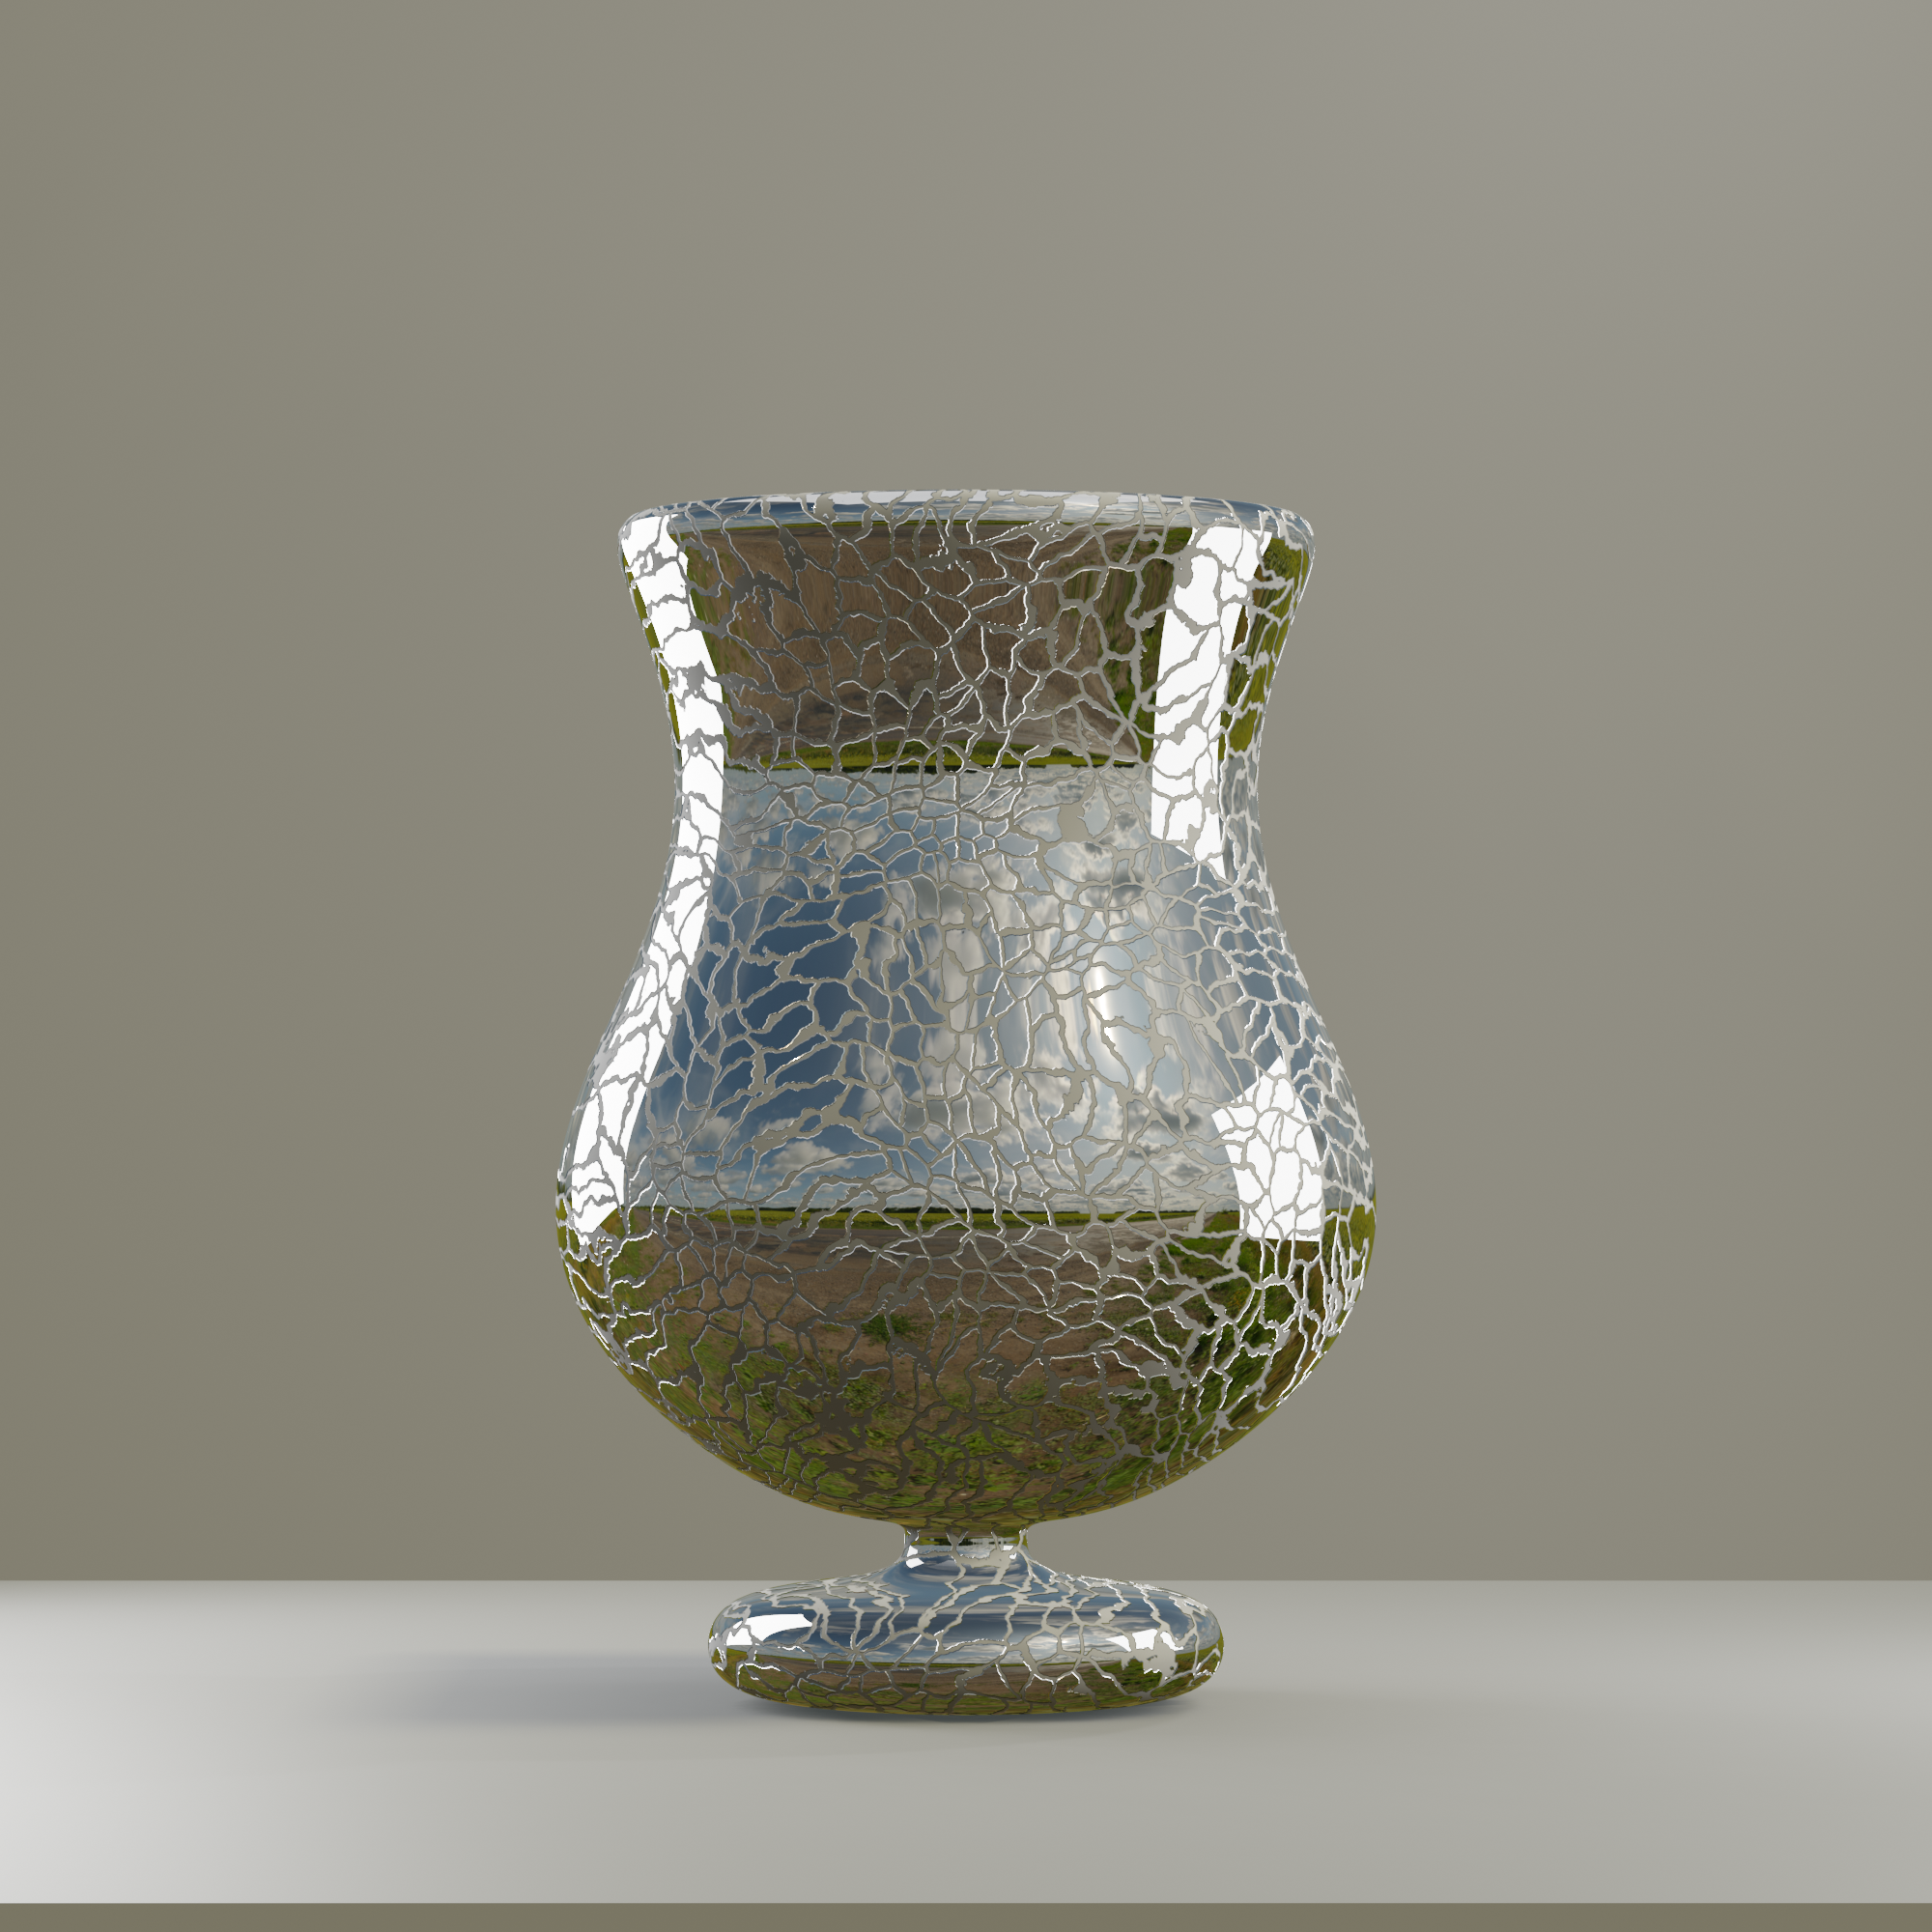 Pack of vases preview image 5